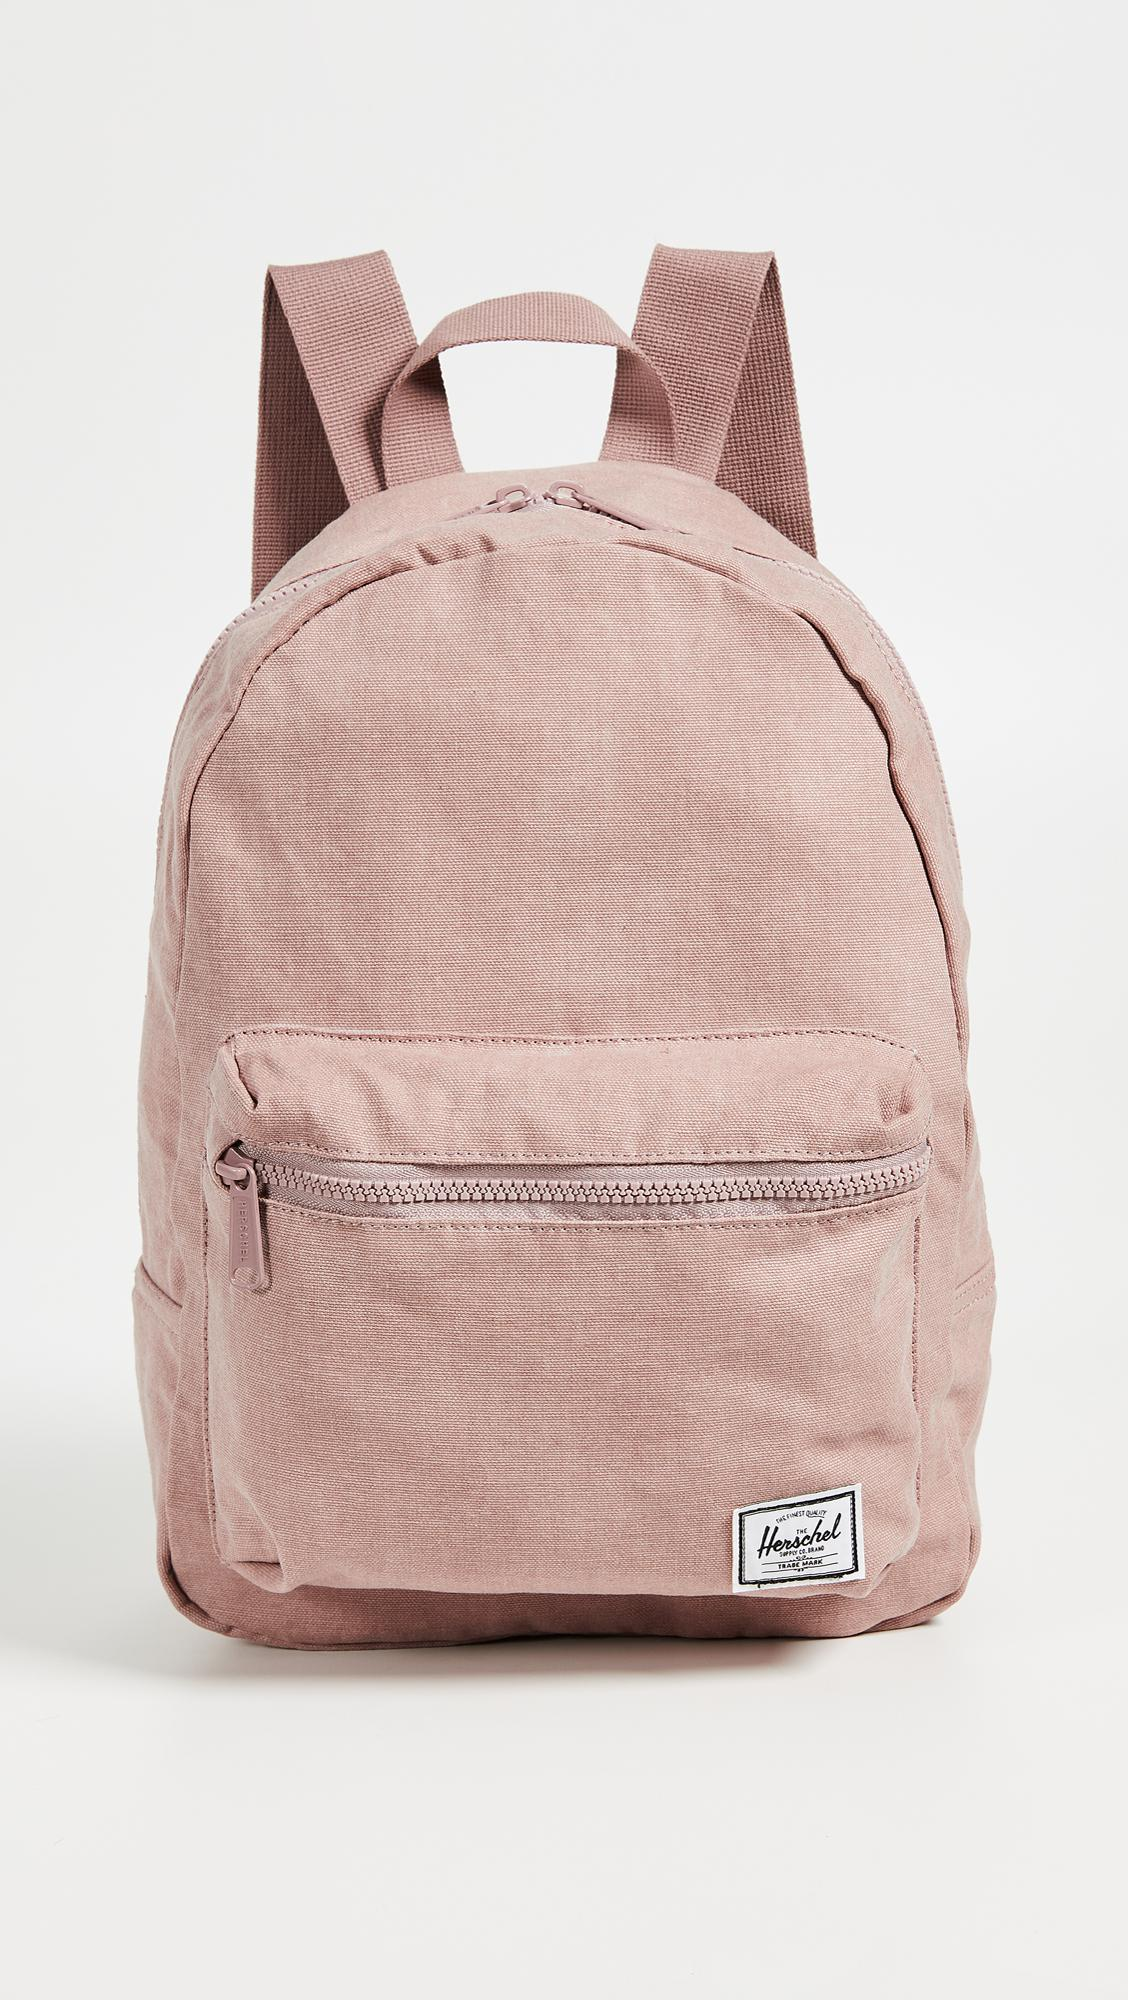 1288c07680a Herschel Supply Co. Cotton Casual Grove X-small Backpack in Pink - Lyst